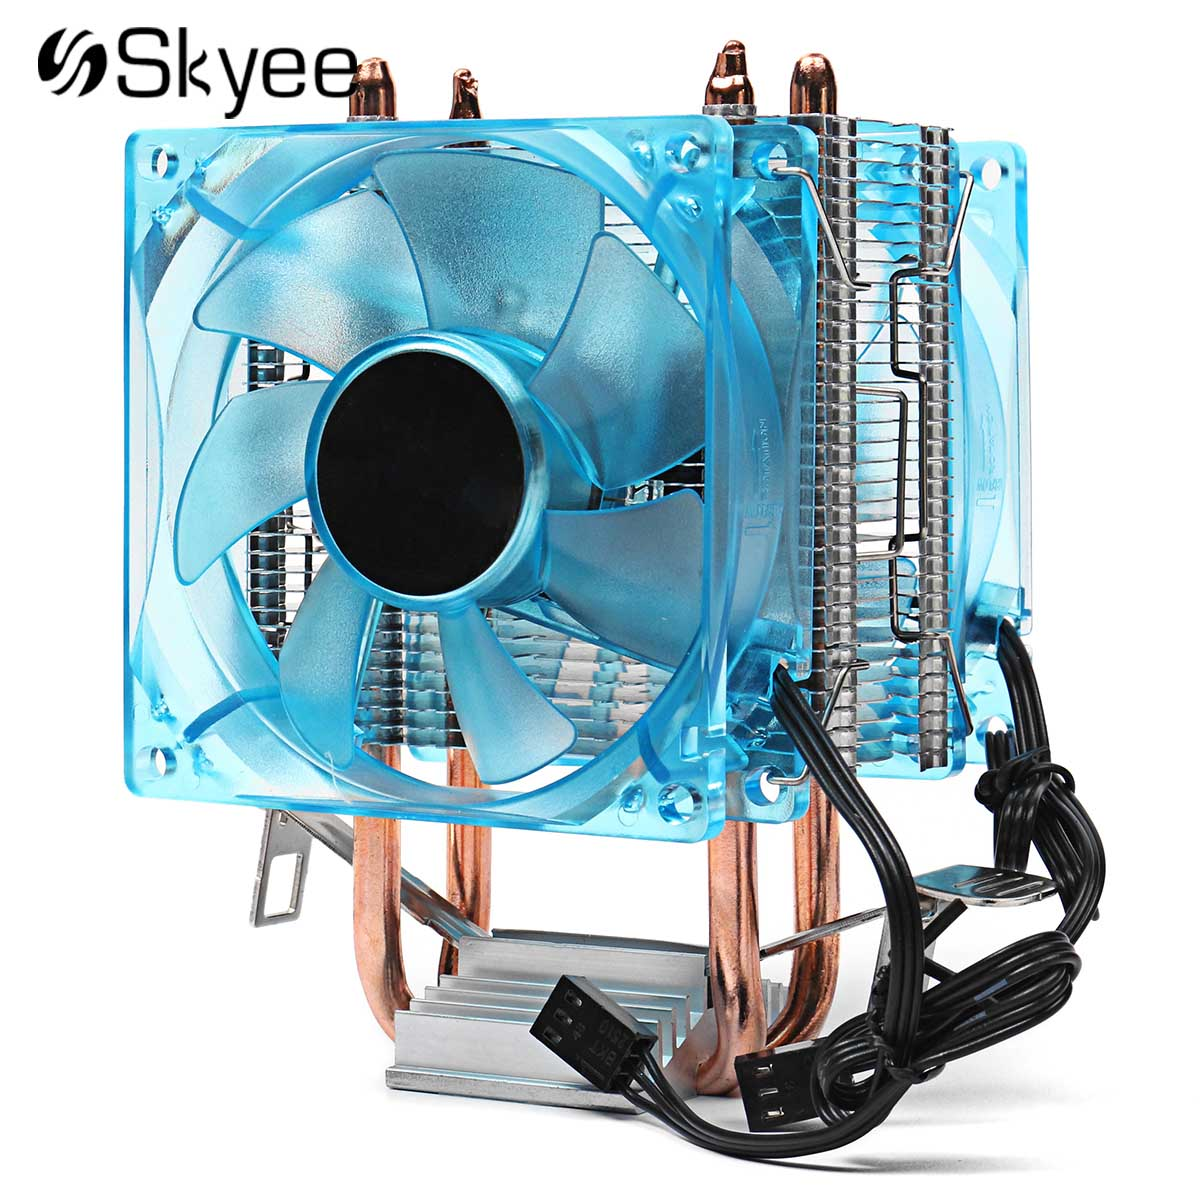 Aluminum CPU Cooling Fan Cooler Heatsink Fan 90mm Dual Copper Pipe LED CPU Cooling Fan for AMD FM1 AM2+ AM3+ Intel 775 1155 1156 quiet cooled fan core led cpu cooler cooling fan cooler heatsink for intel socket lga1156 1155 775 amd am3 high quality